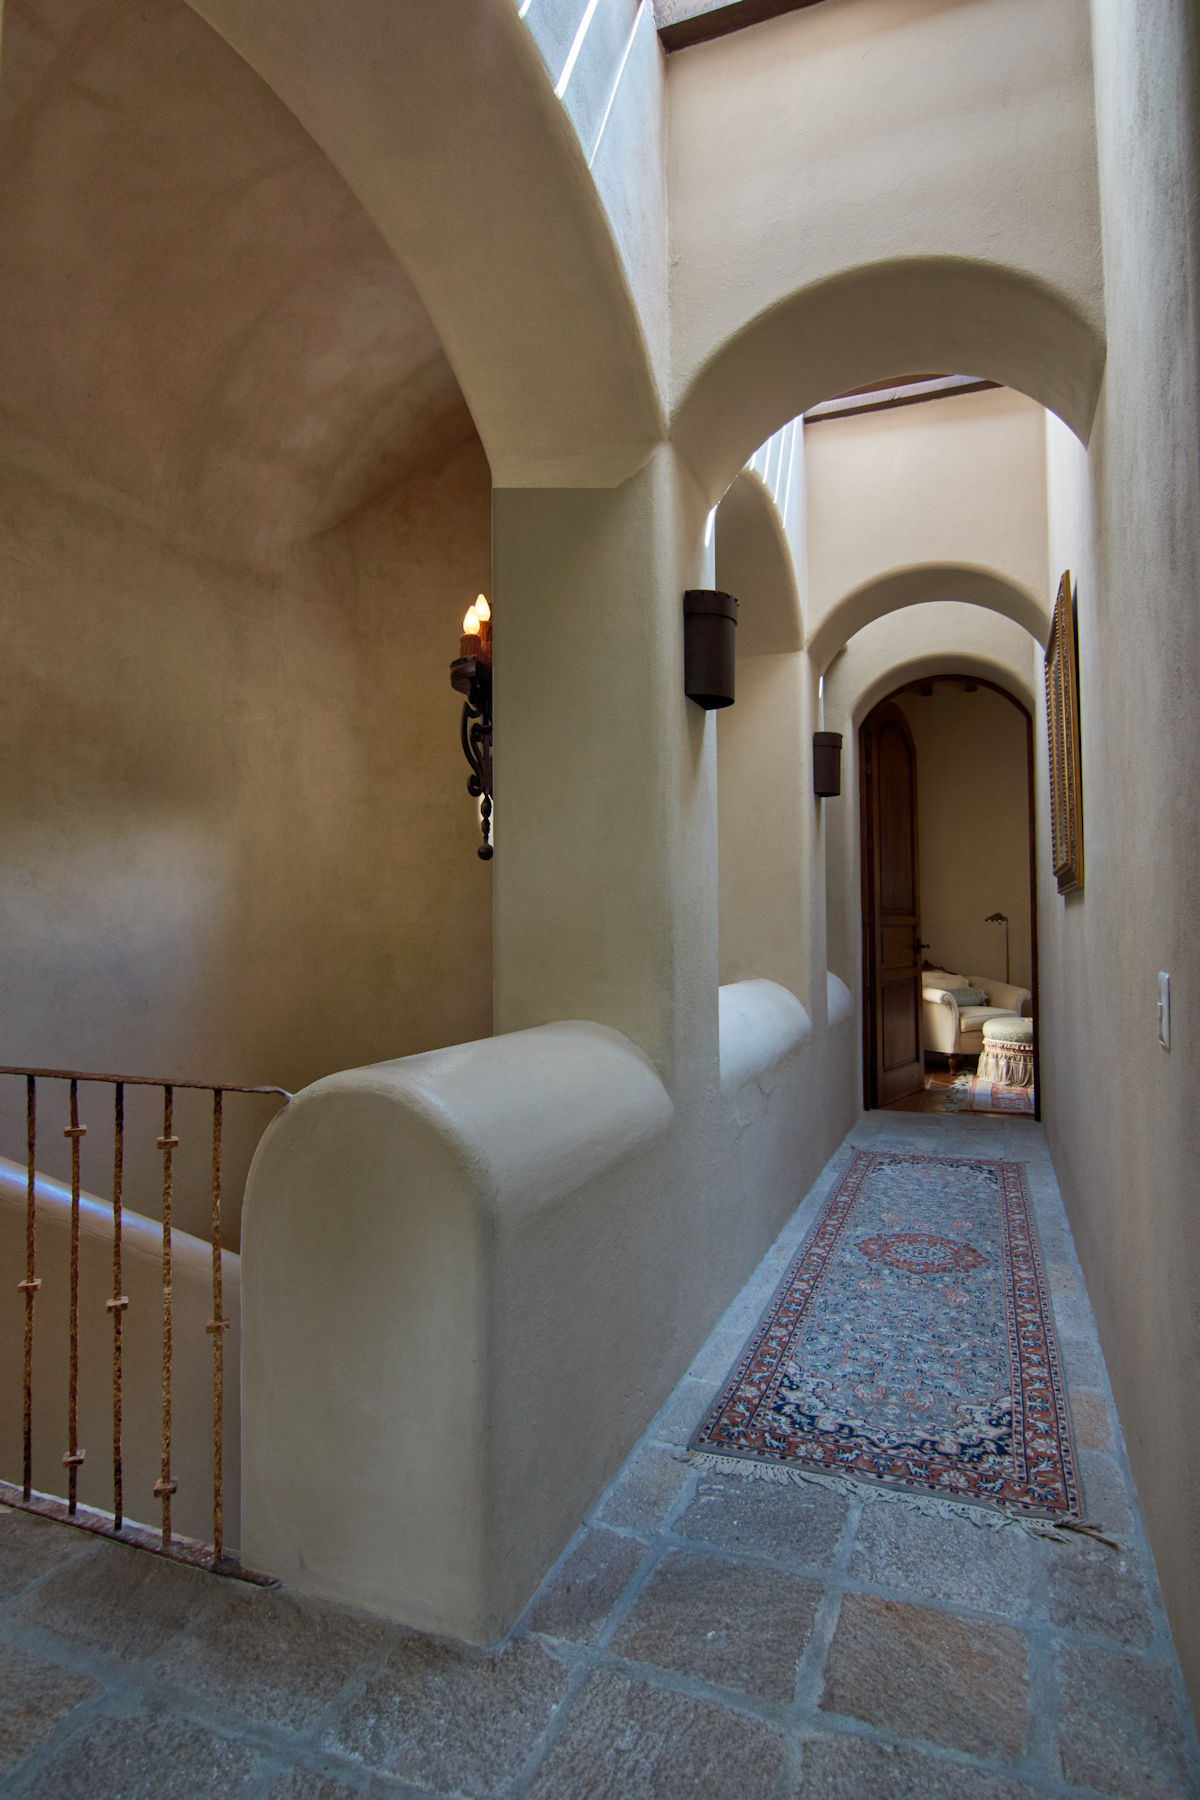 Additional photo for property listing at Casa Guadiana Guadiana, San Miguel De Allende, Guanajuato México